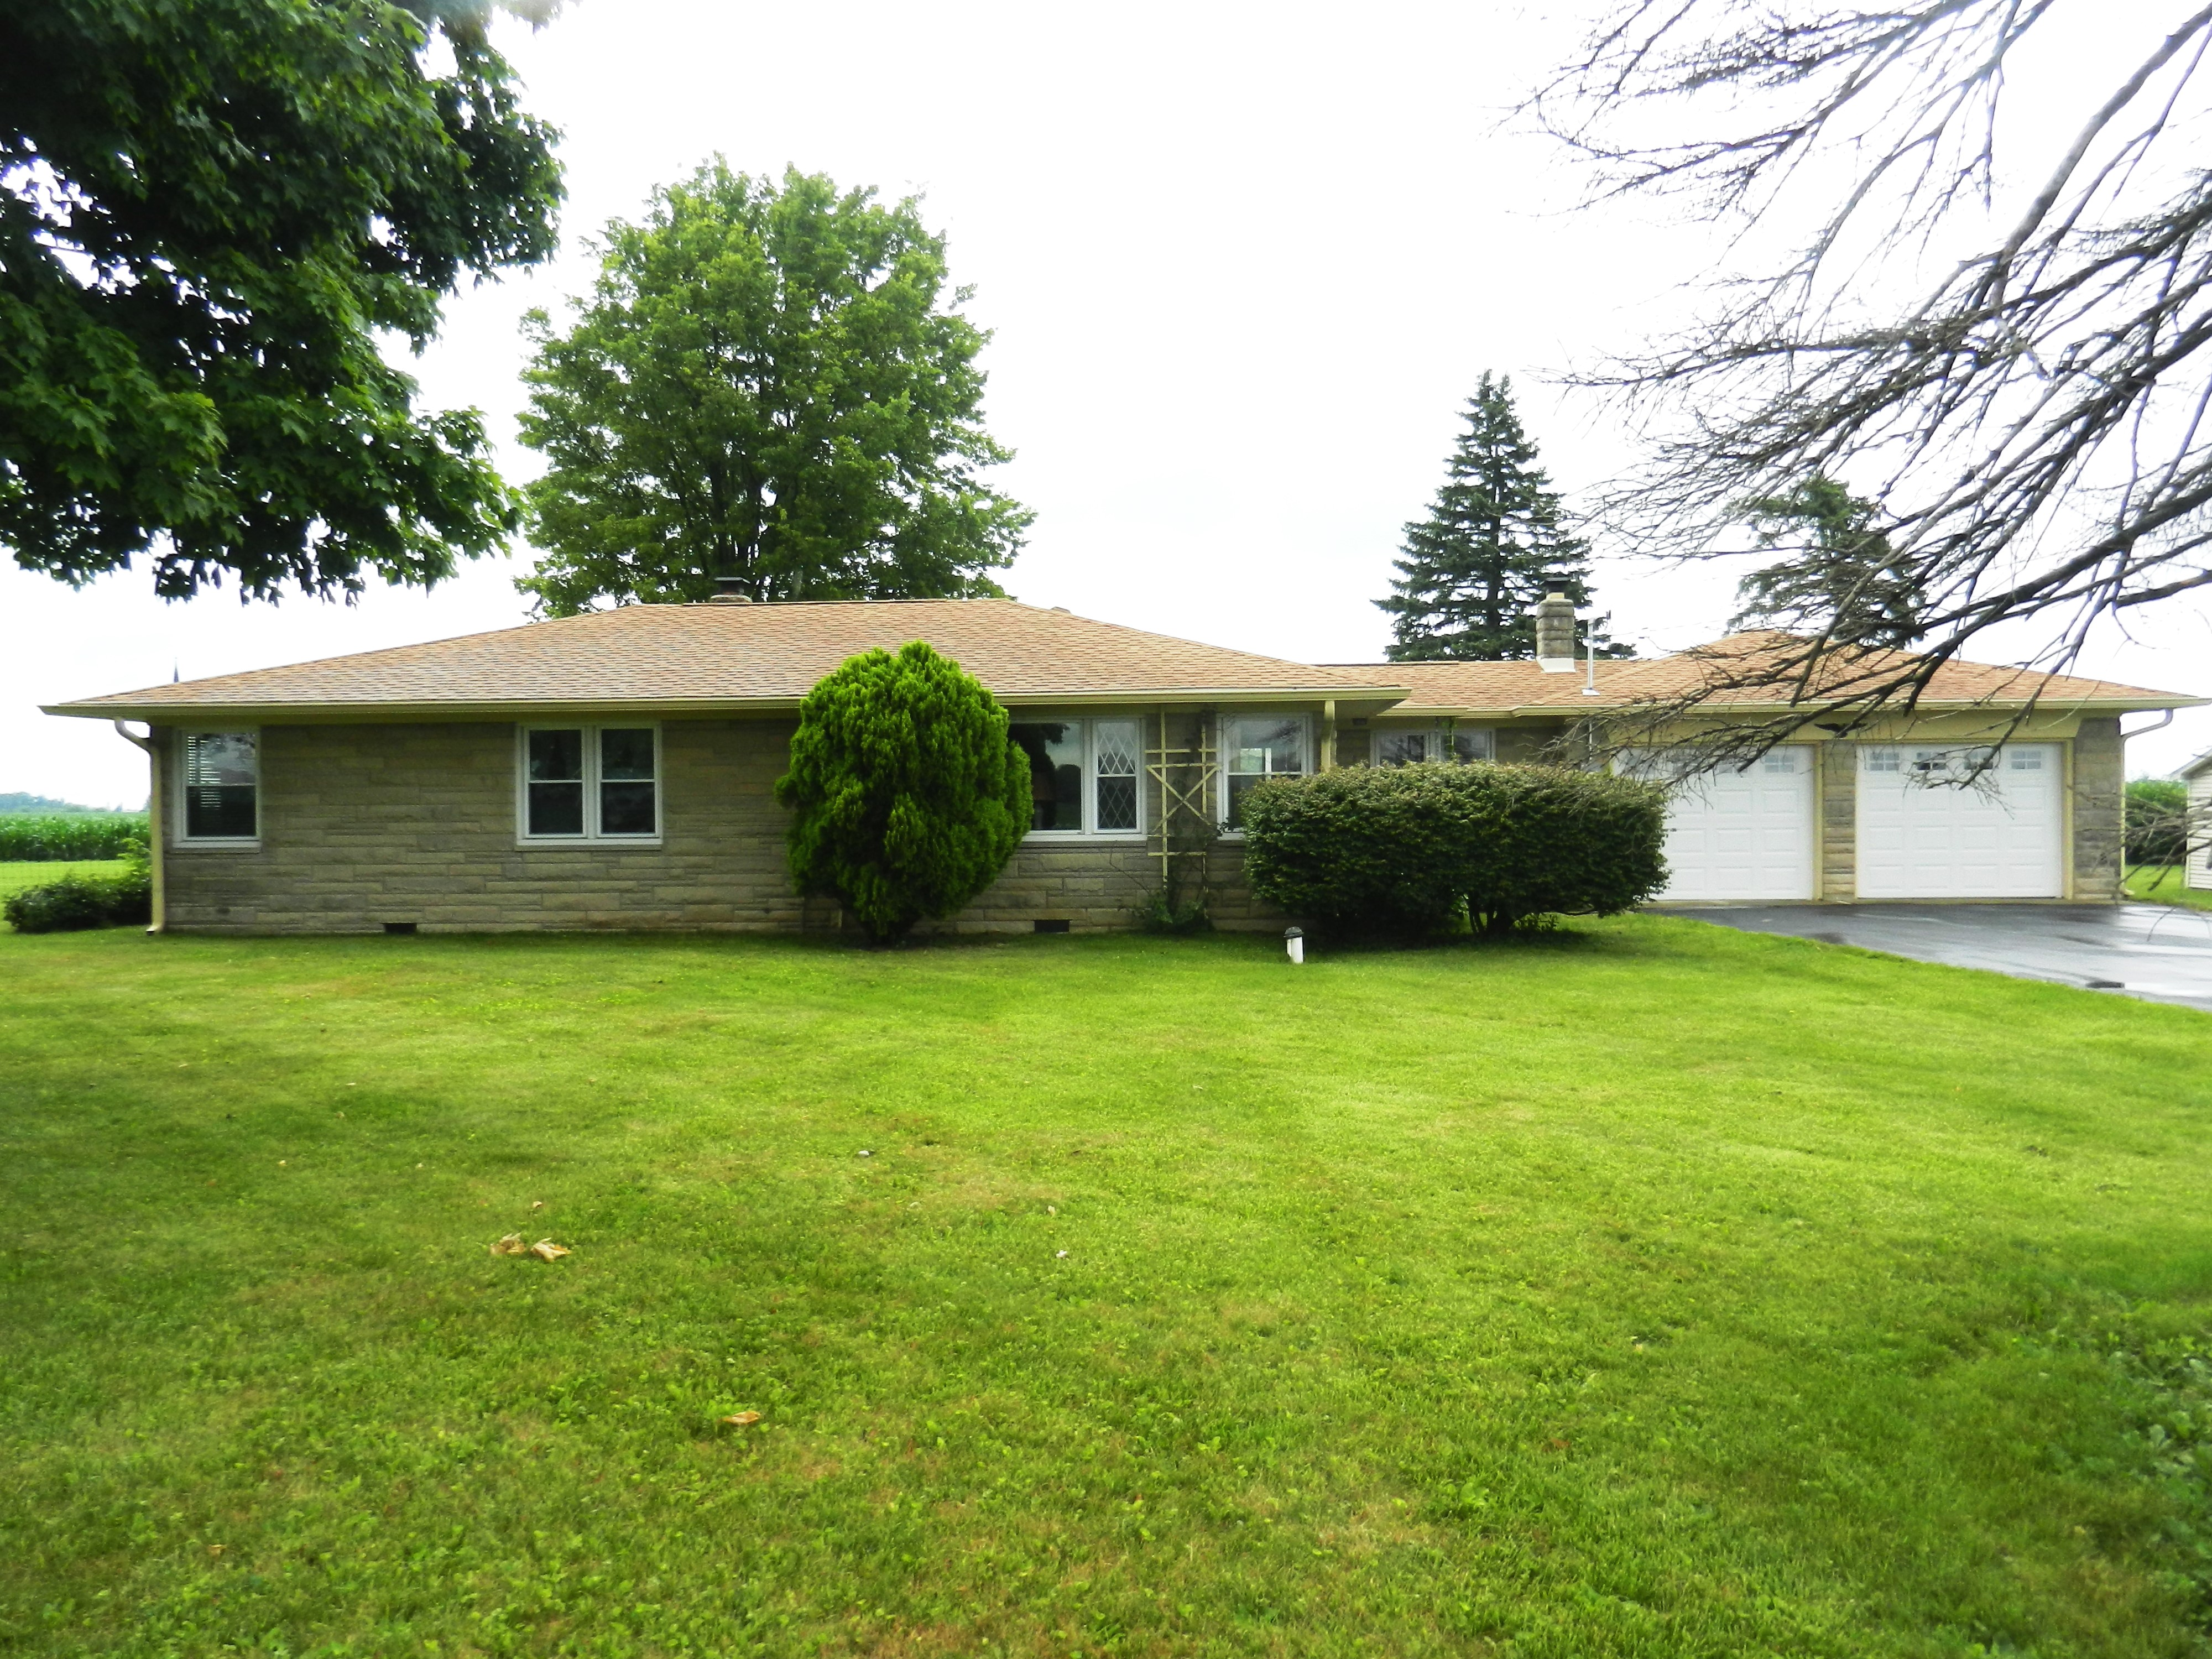 ABSOLUTE AUCTION – 3 BEDROOM HOME ON 1.81 ACRES!